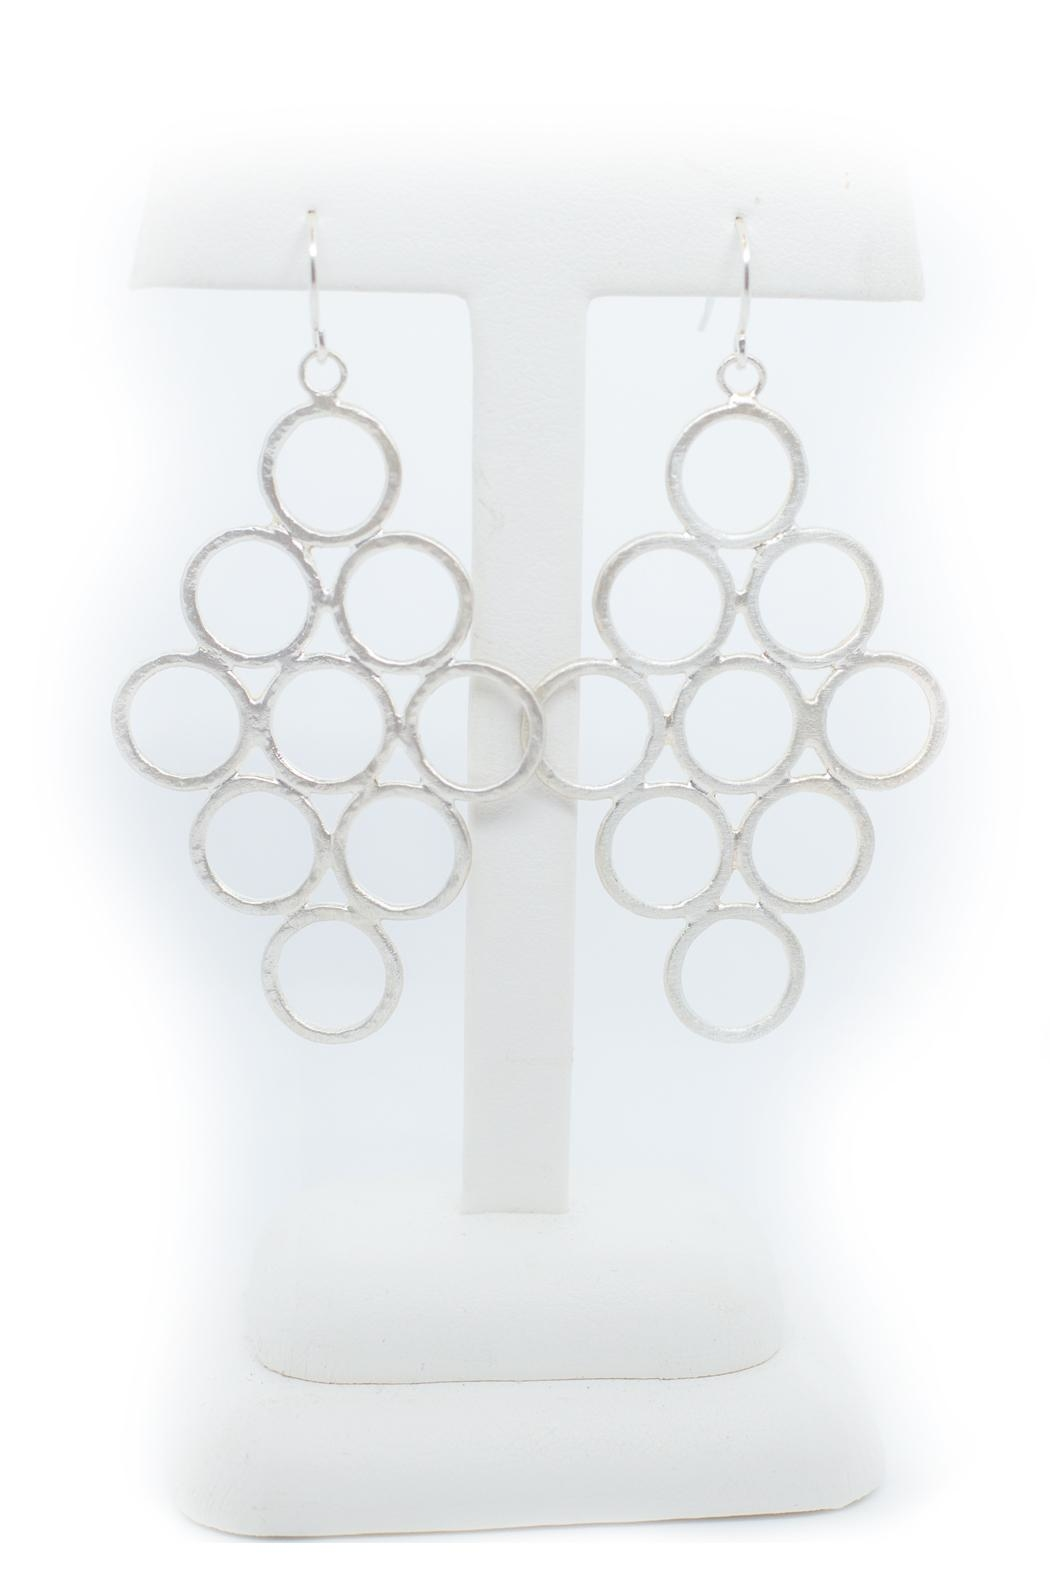 Kate Sydney Jewelry Honeycomb Silver Earrings - Front Full Image